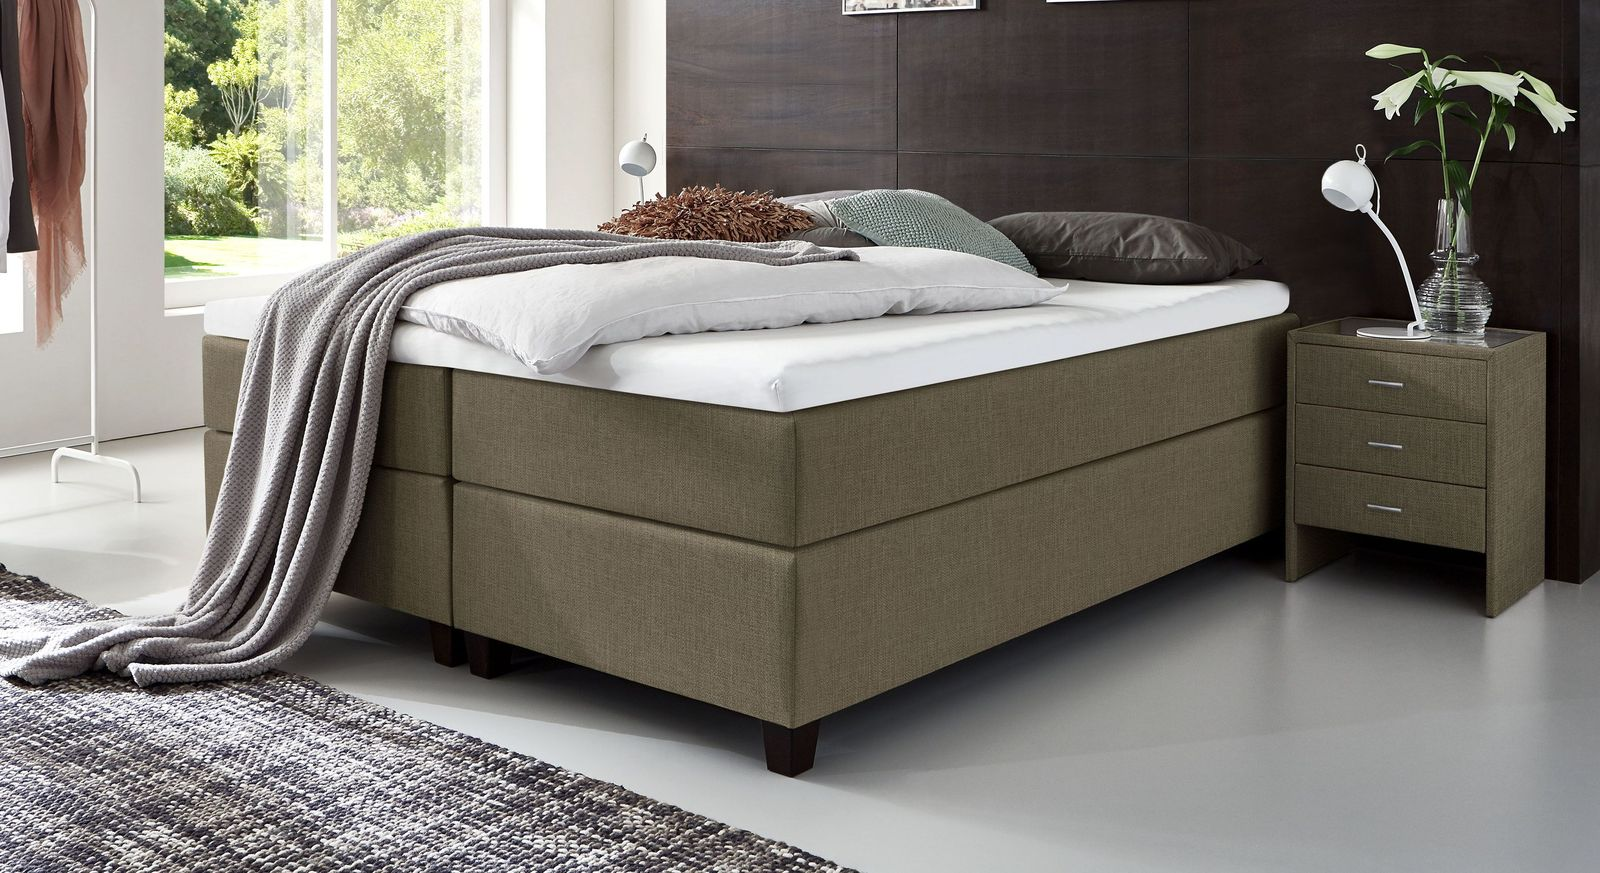 66 cm hohe Boxspringliege Luciano aus meliertem Webstoff in Graubraun